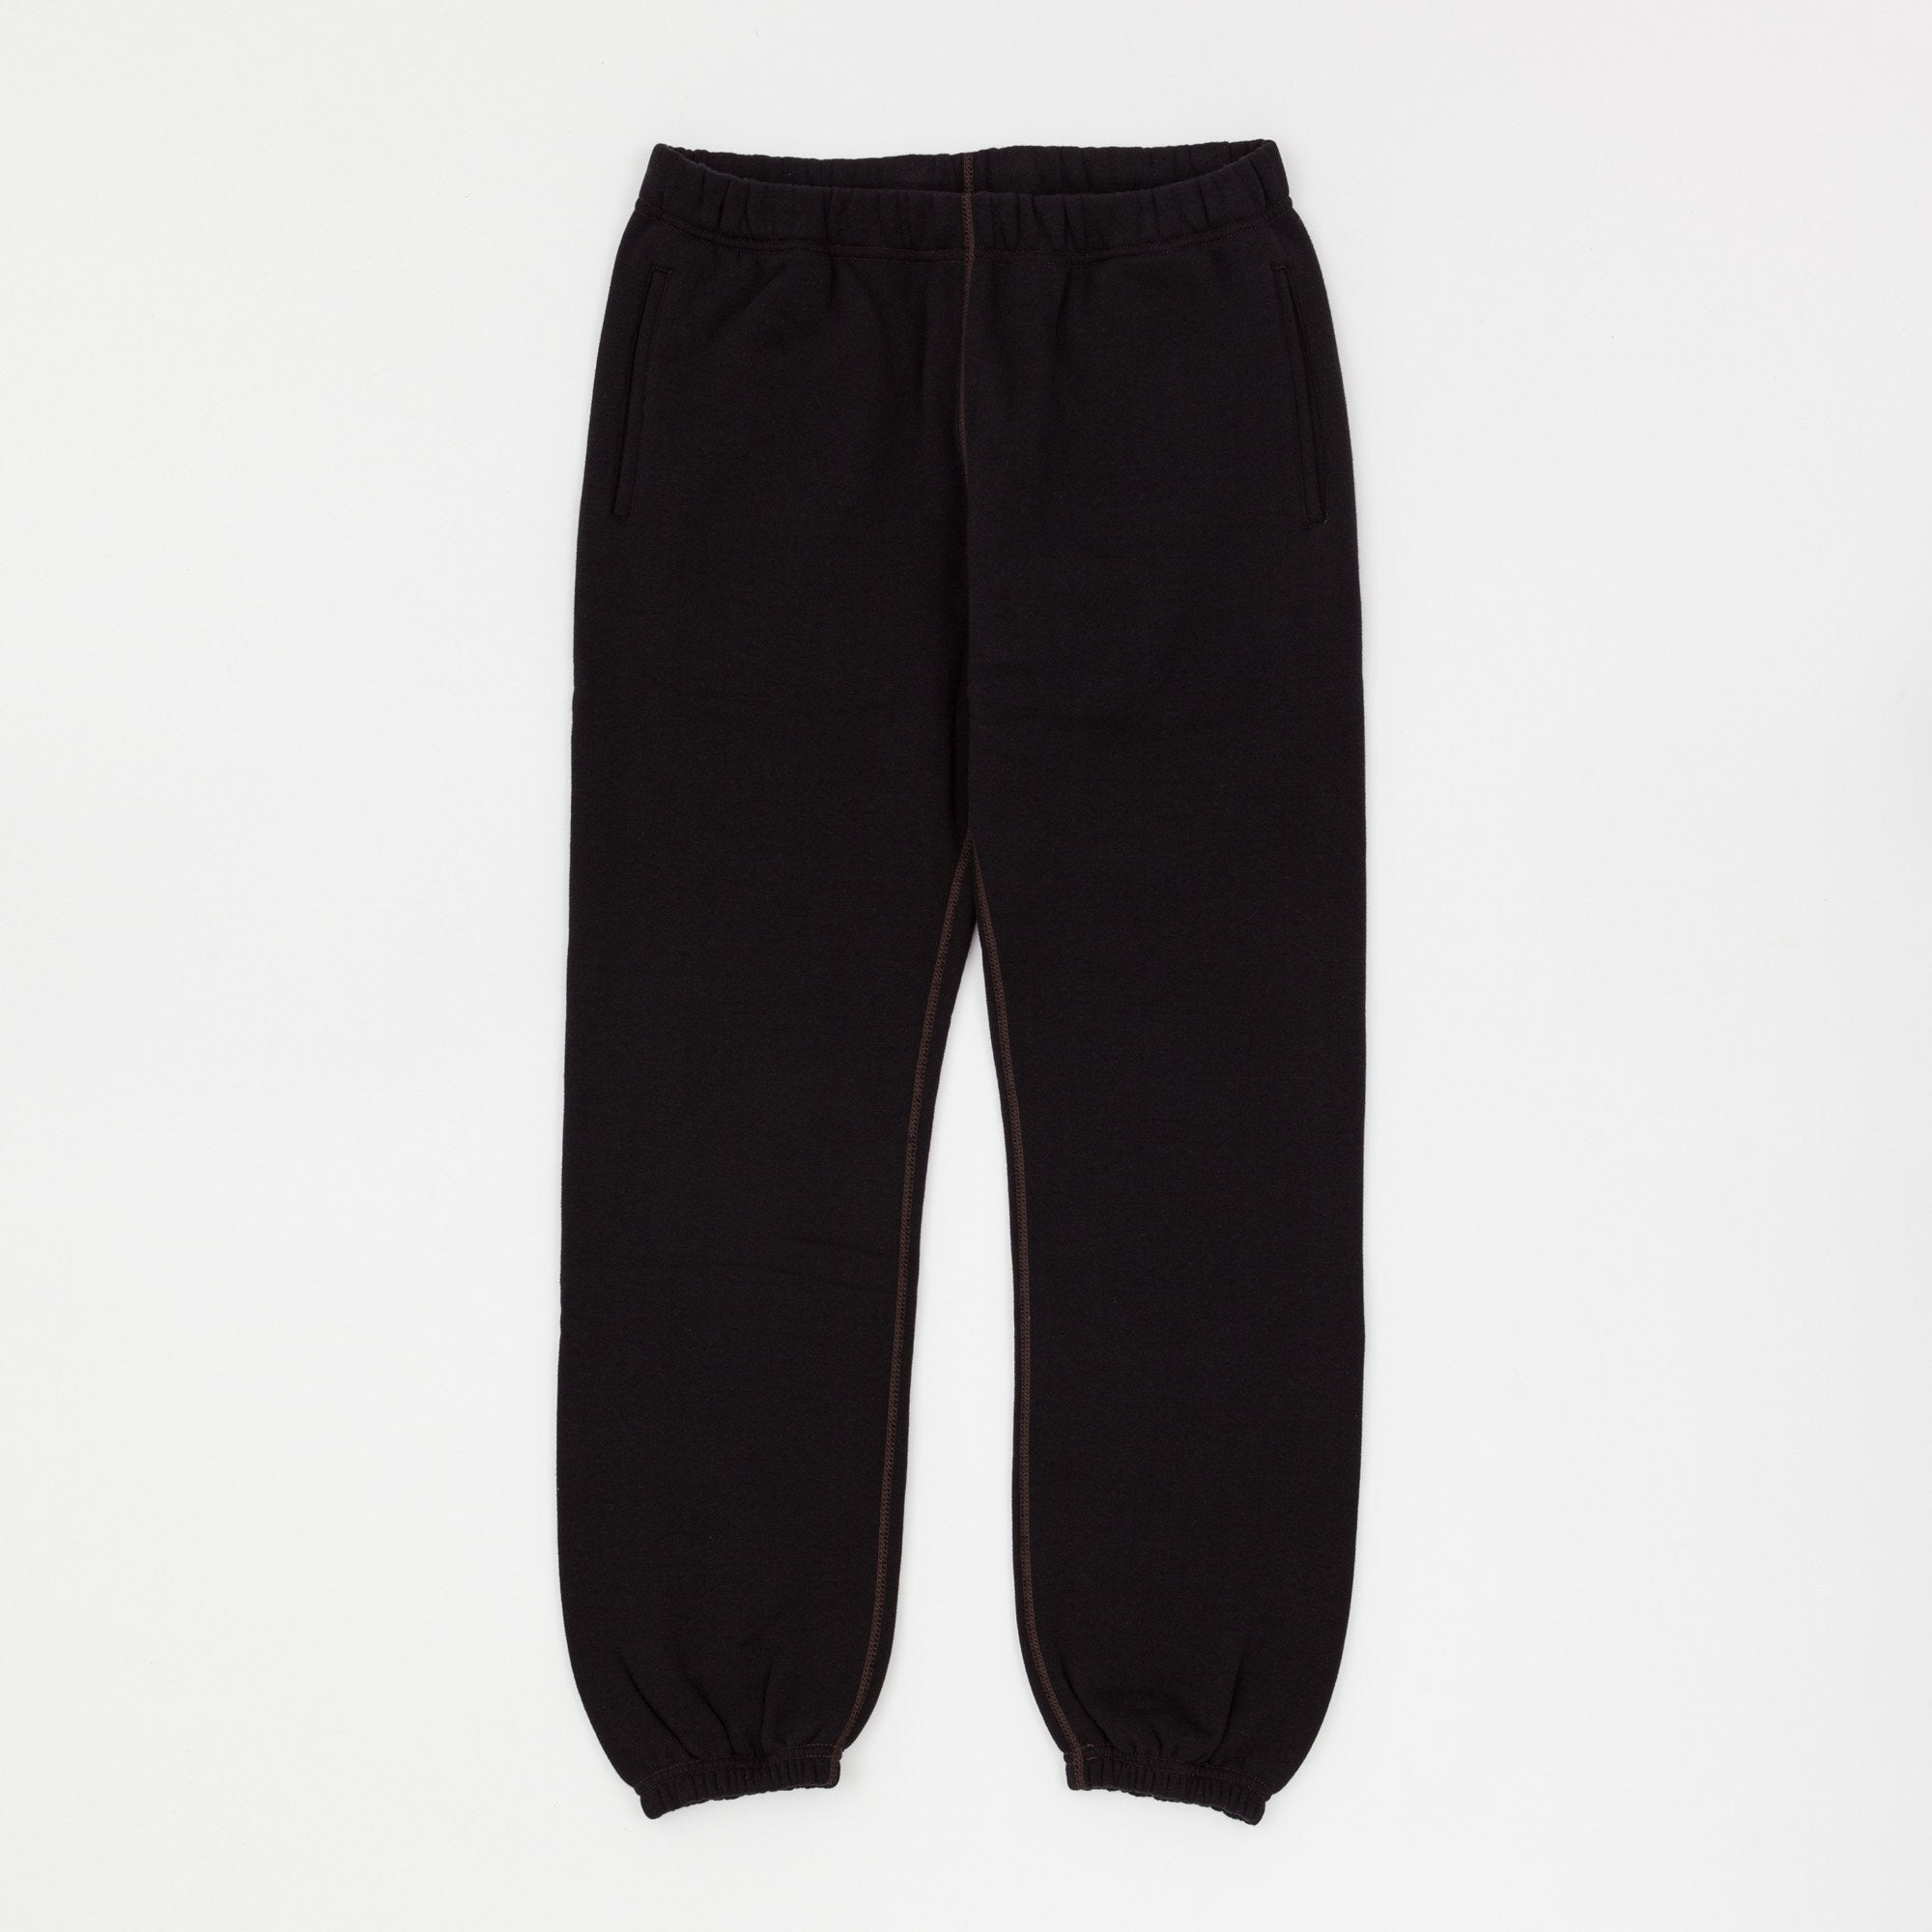 The Real McCoy's Loopwheel Sweatpants